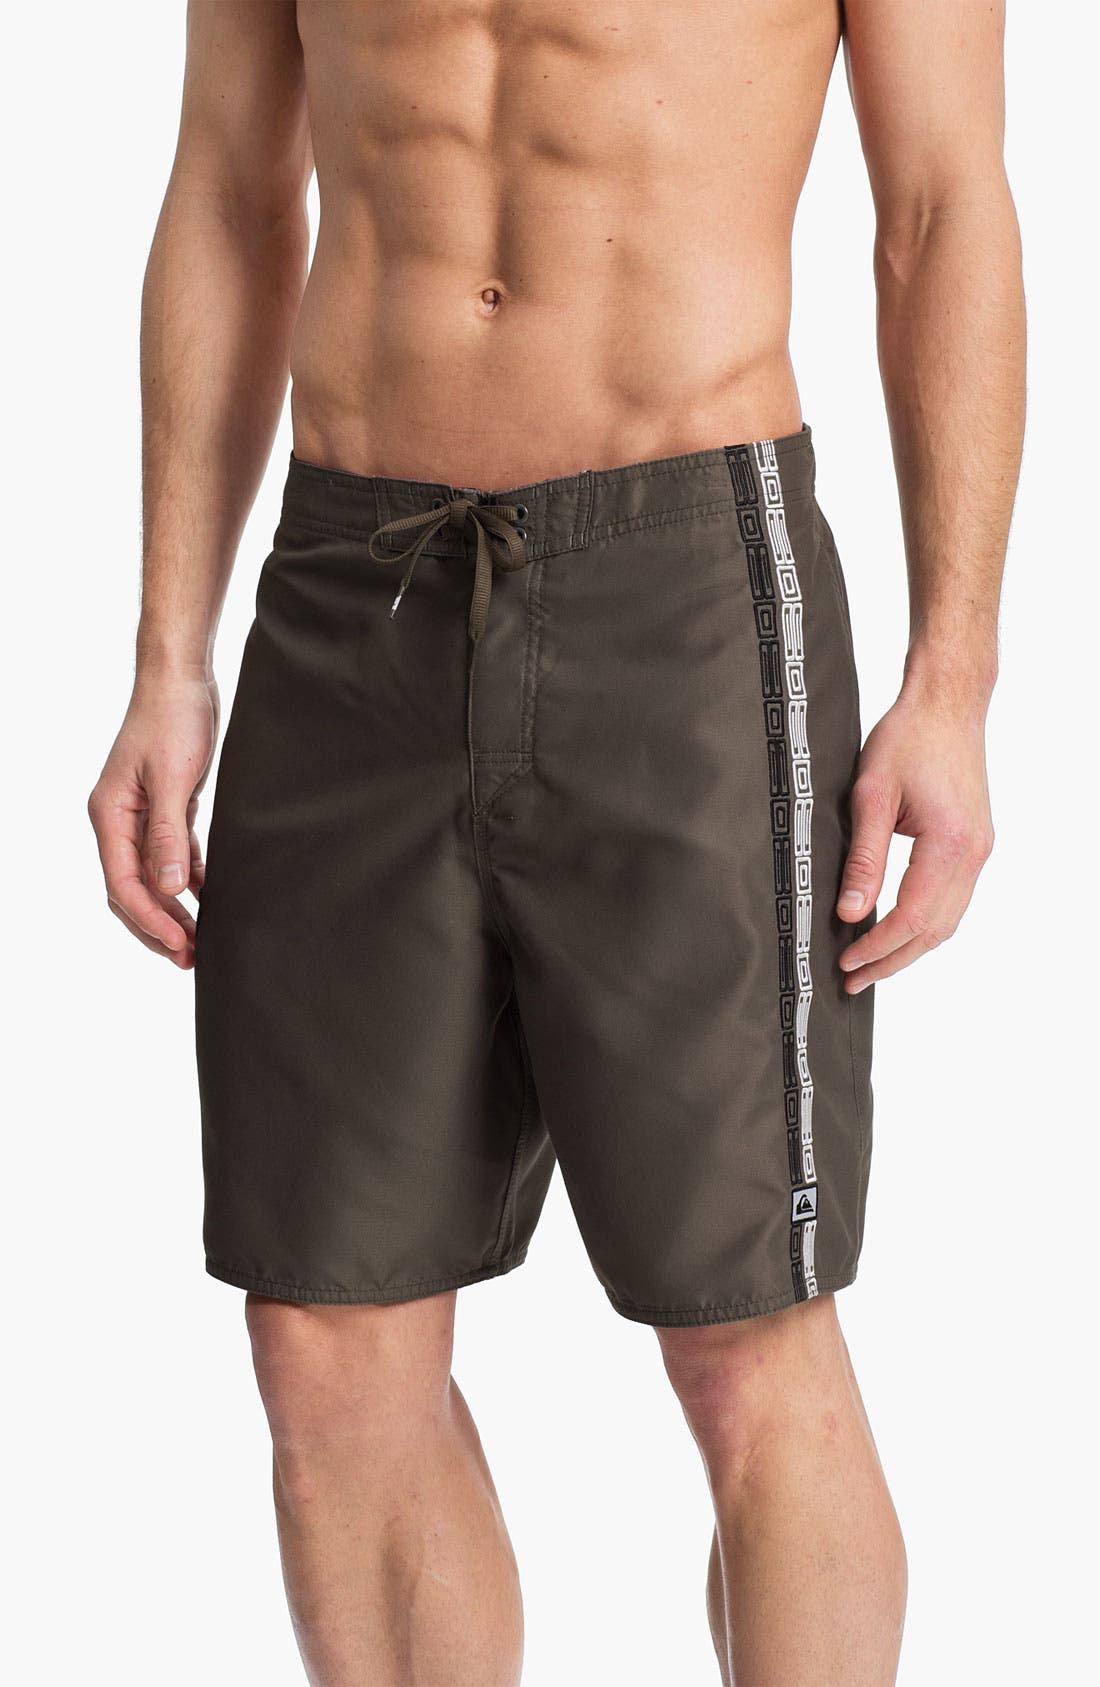 Alternate Image 1 Selected - Quiksilver 'Balboa' Board Shorts